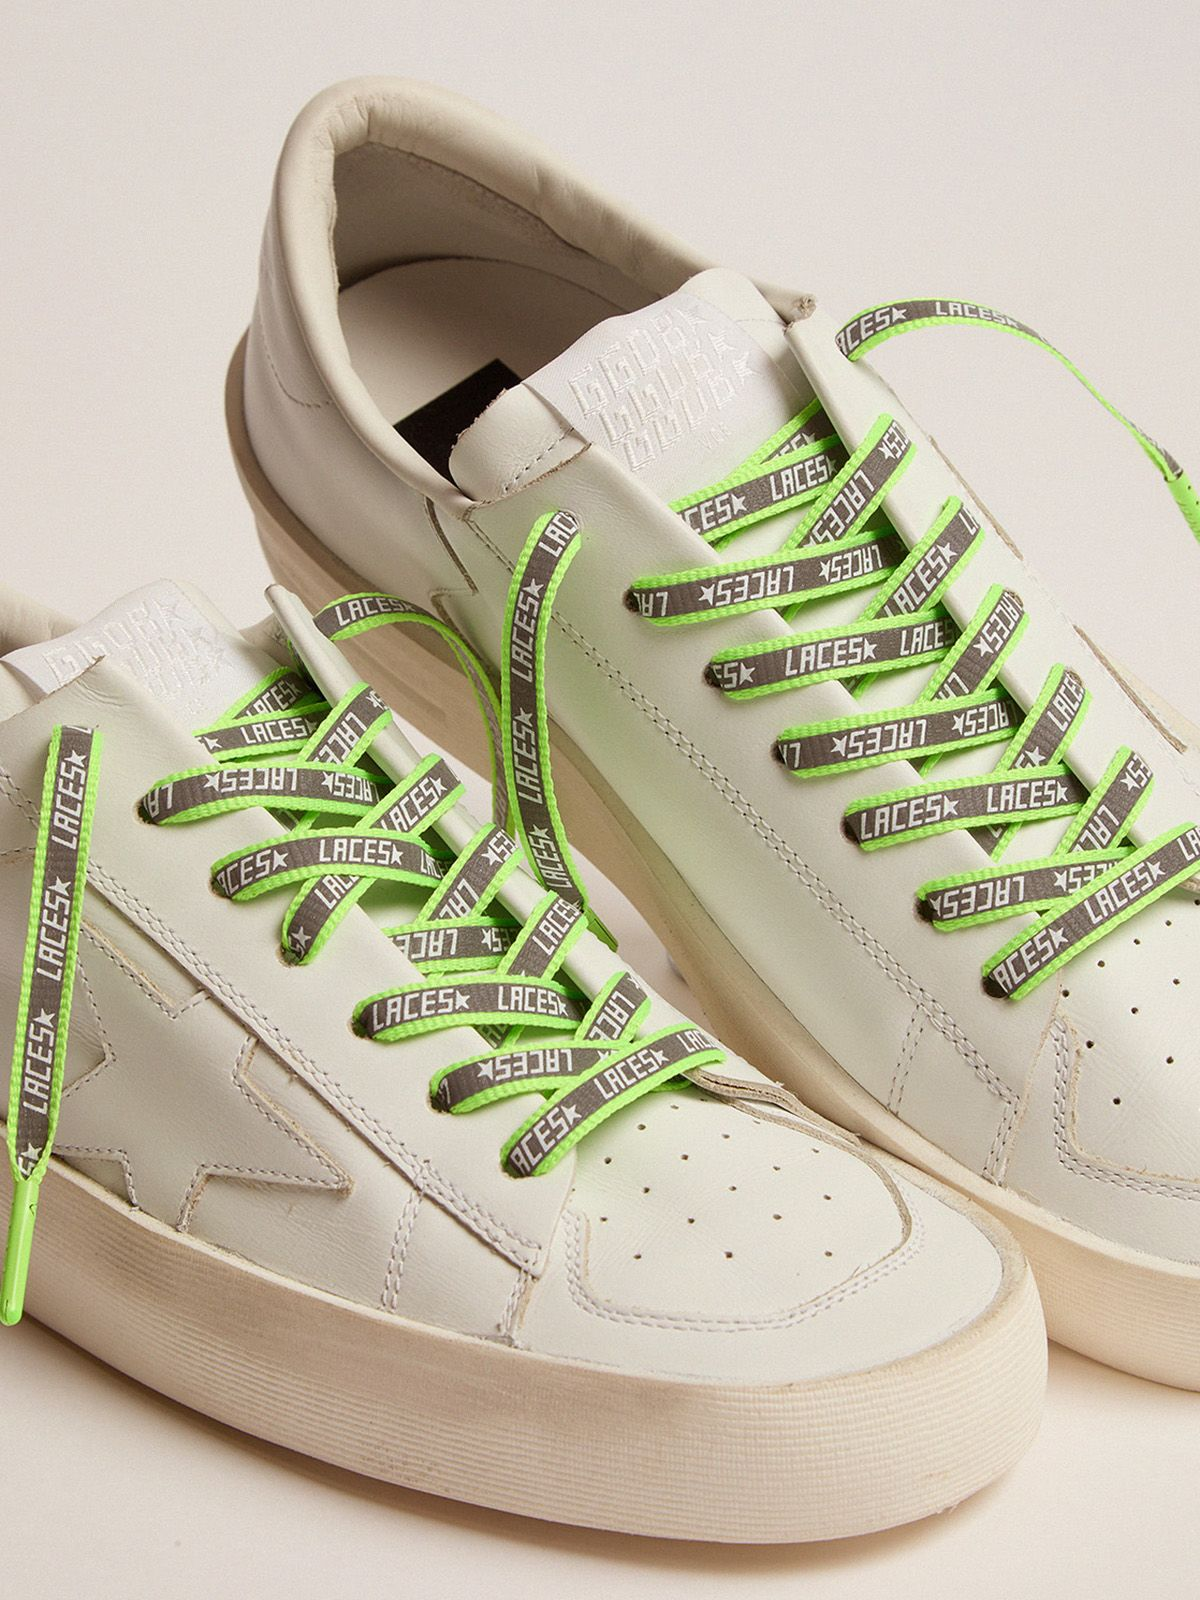 Golden Goose - Women's neon green reflective laces with laces print in